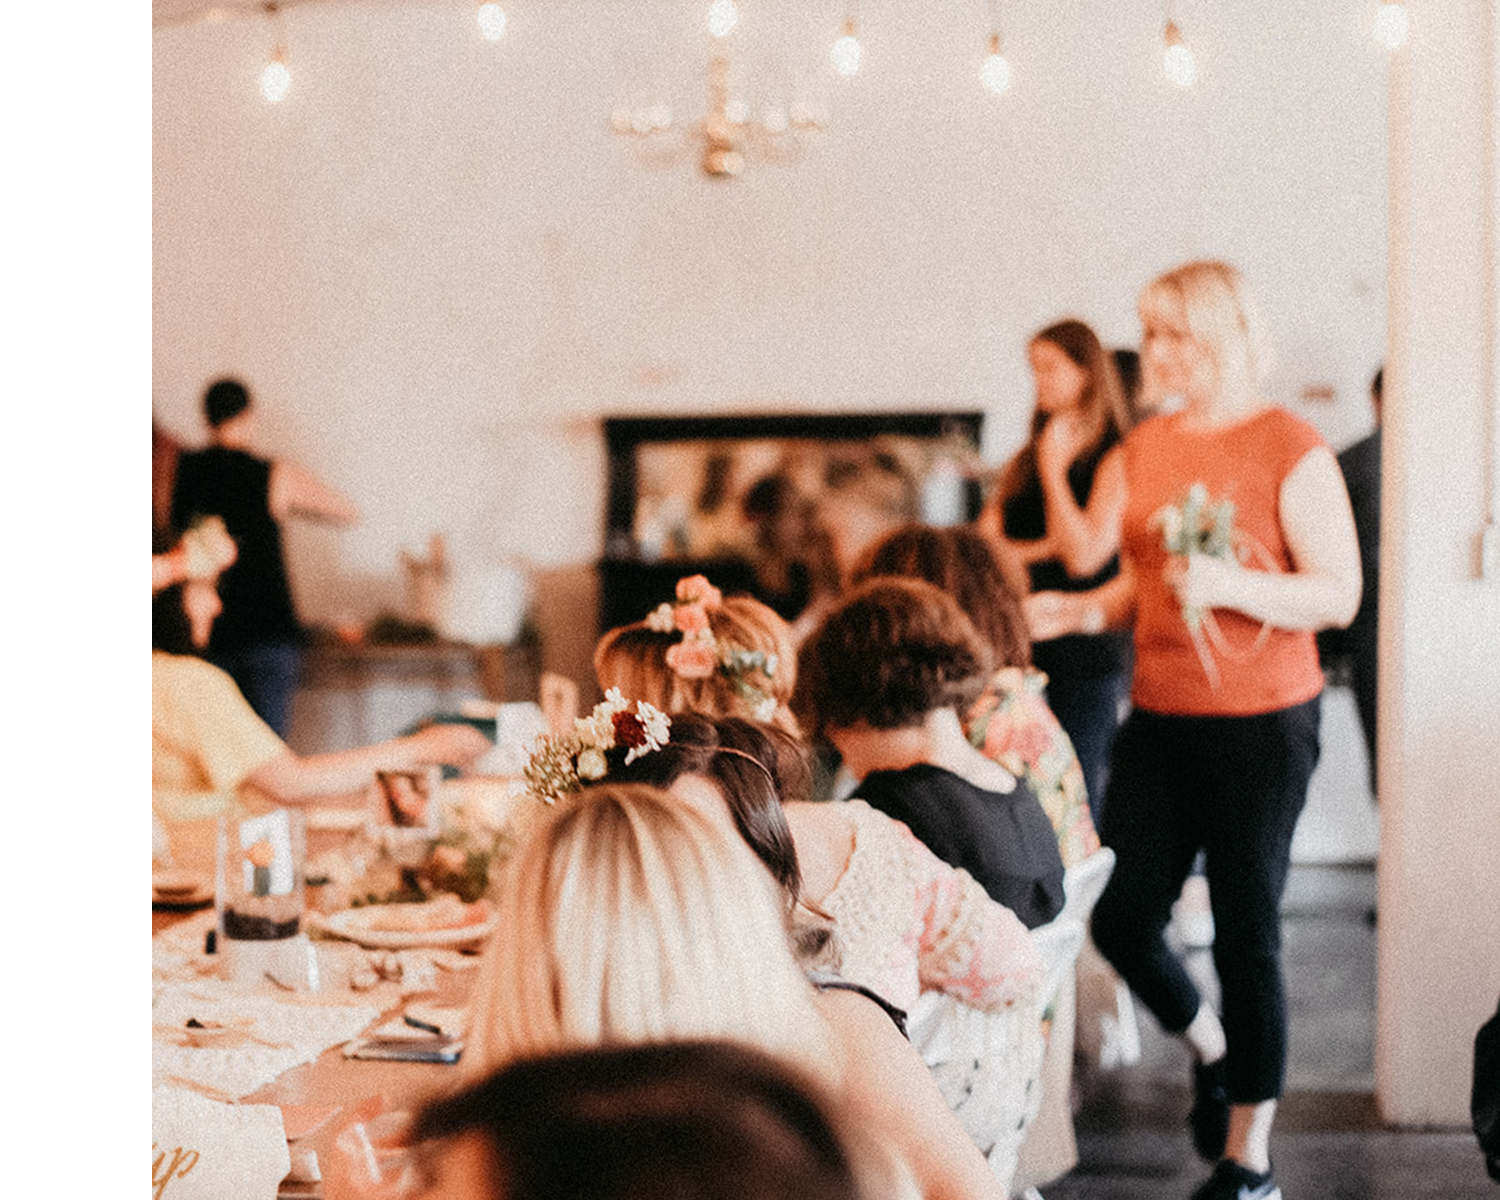 Share Your Story - Intentional community has changed my life, so I truly believe in the power of gathering to inspire and encourage one another. We host Wake Up Your Wild nights, workshops, retreats, and more! Join us at an upcoming event, we'd love to see you there!